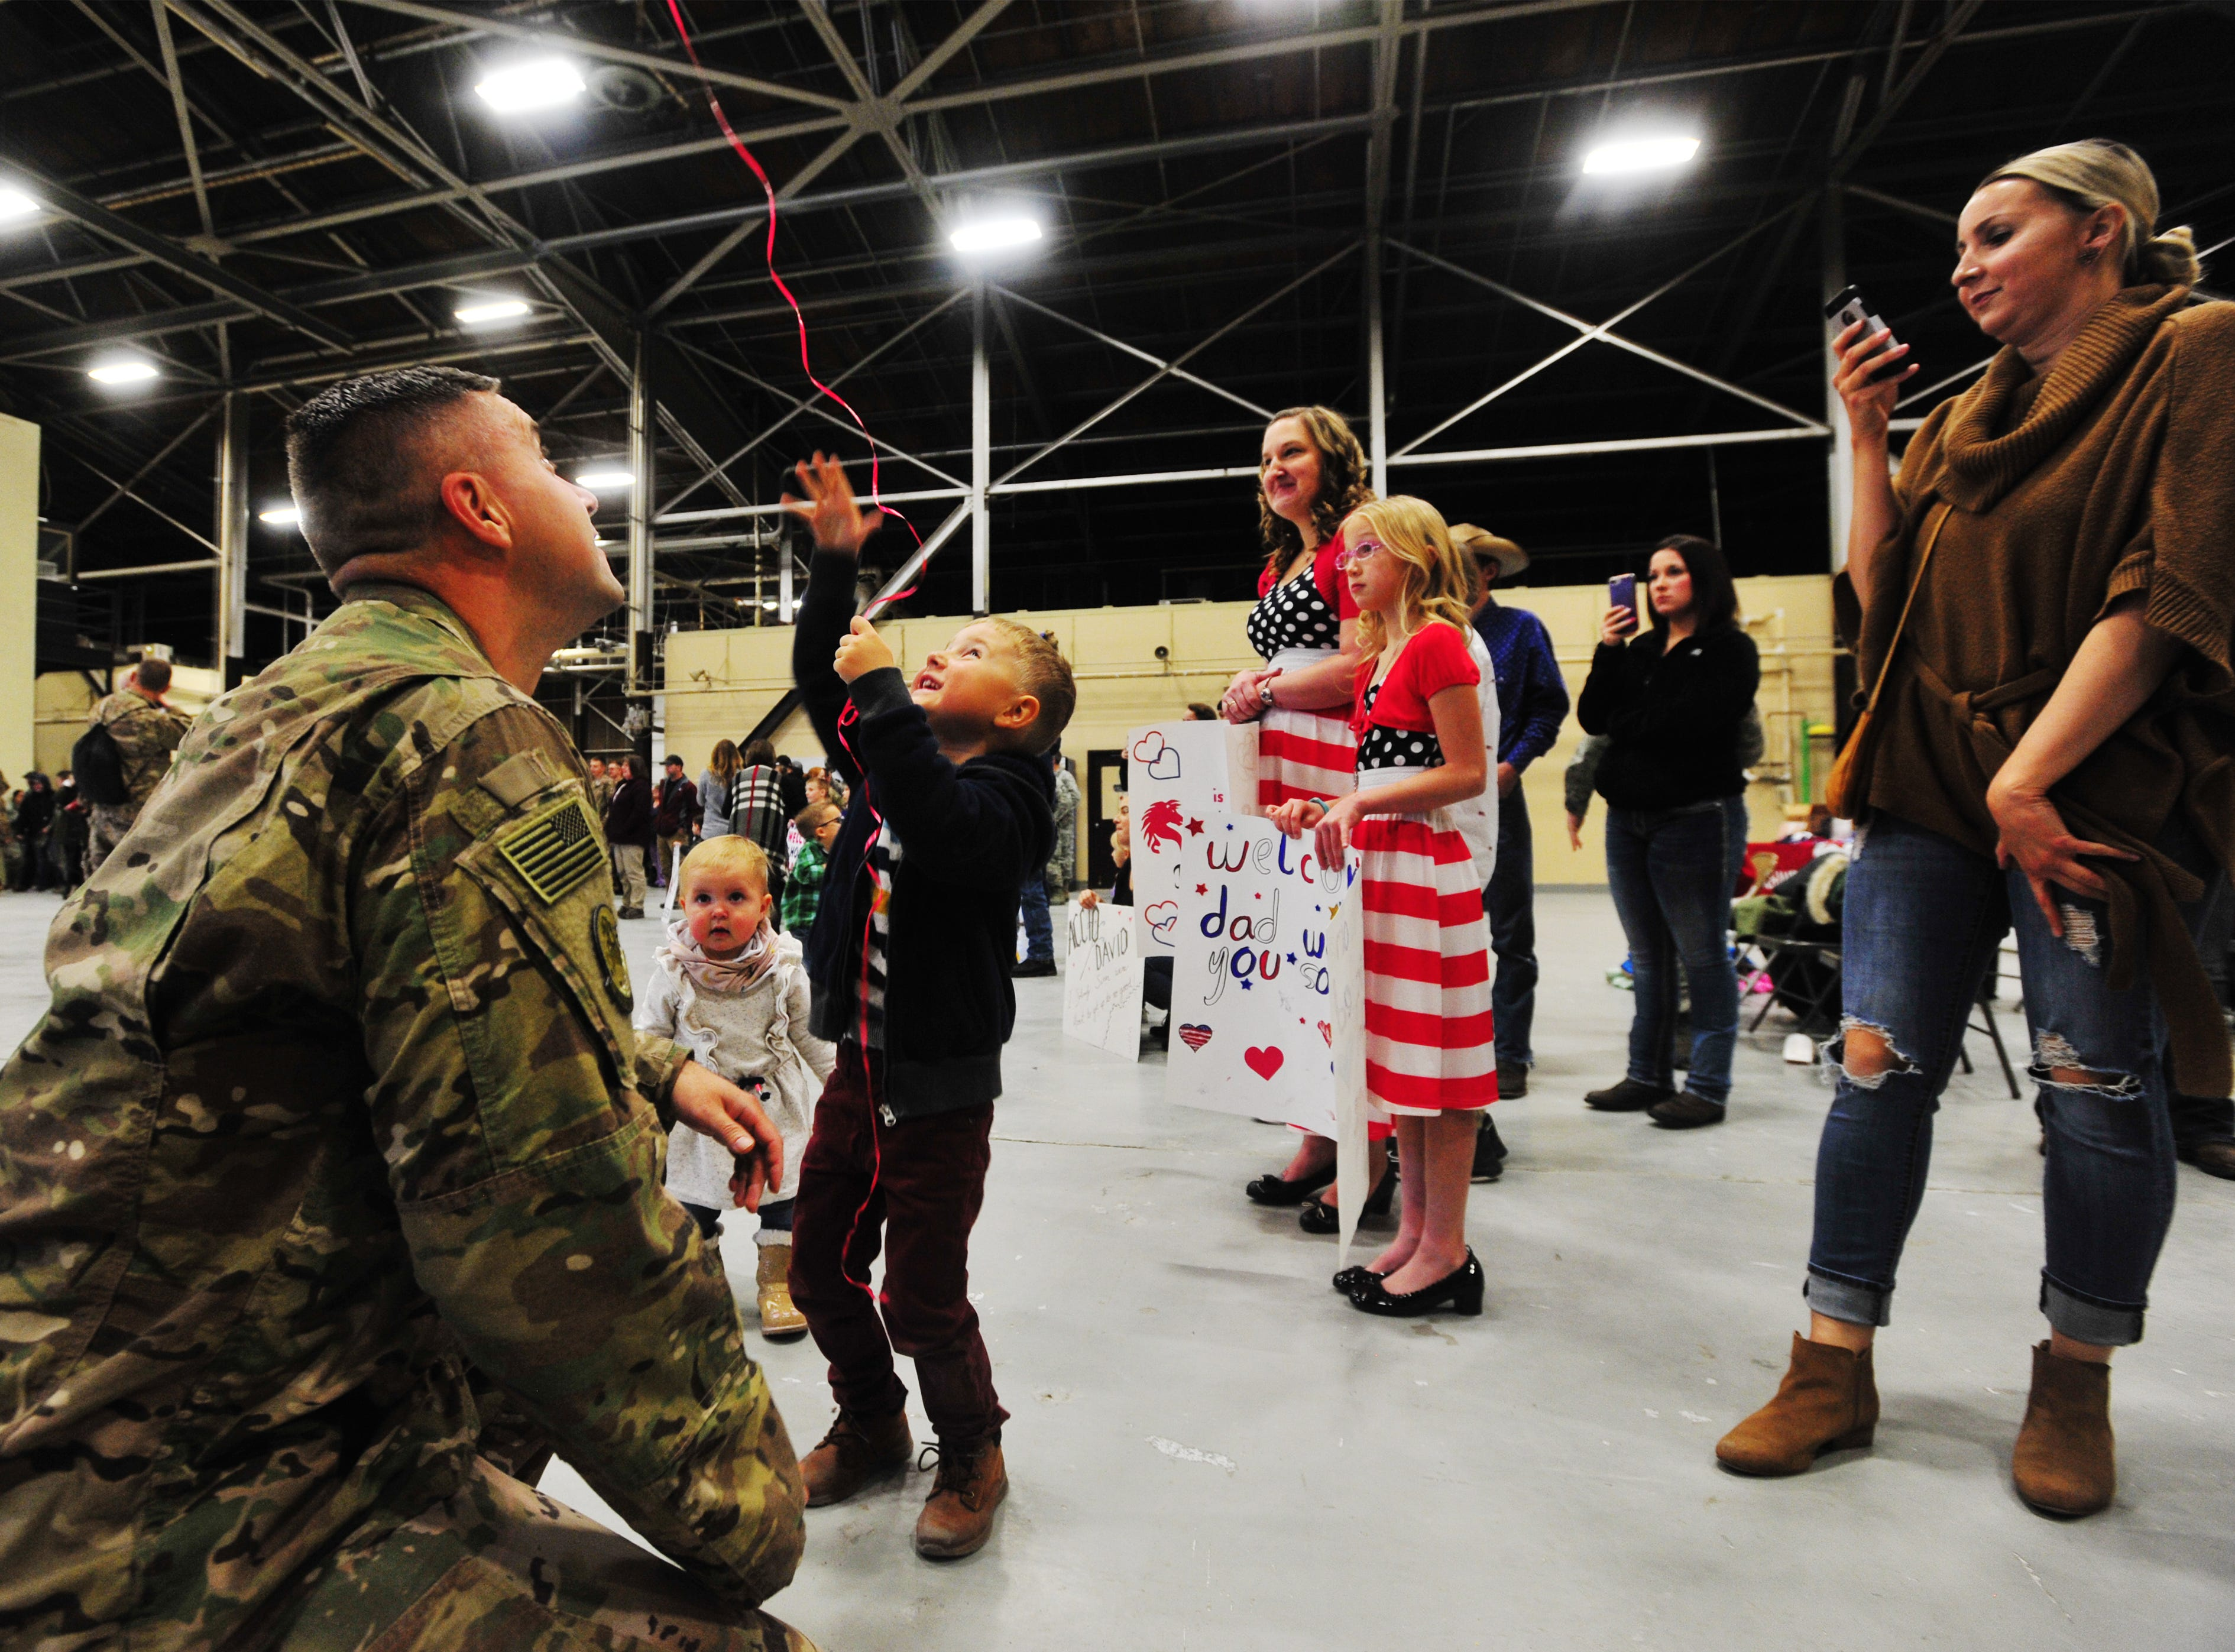 Tech Sergeant Tomasz Idzi plays with his son Victor, age 4, in a hanger at Malmstrom Air Force Base on Monday.  Idzi was one of 100 members of the 819th Red Horse Squadron who returned to Malmstrom Air Force Base after a seven month deployment to the African country of Niger.